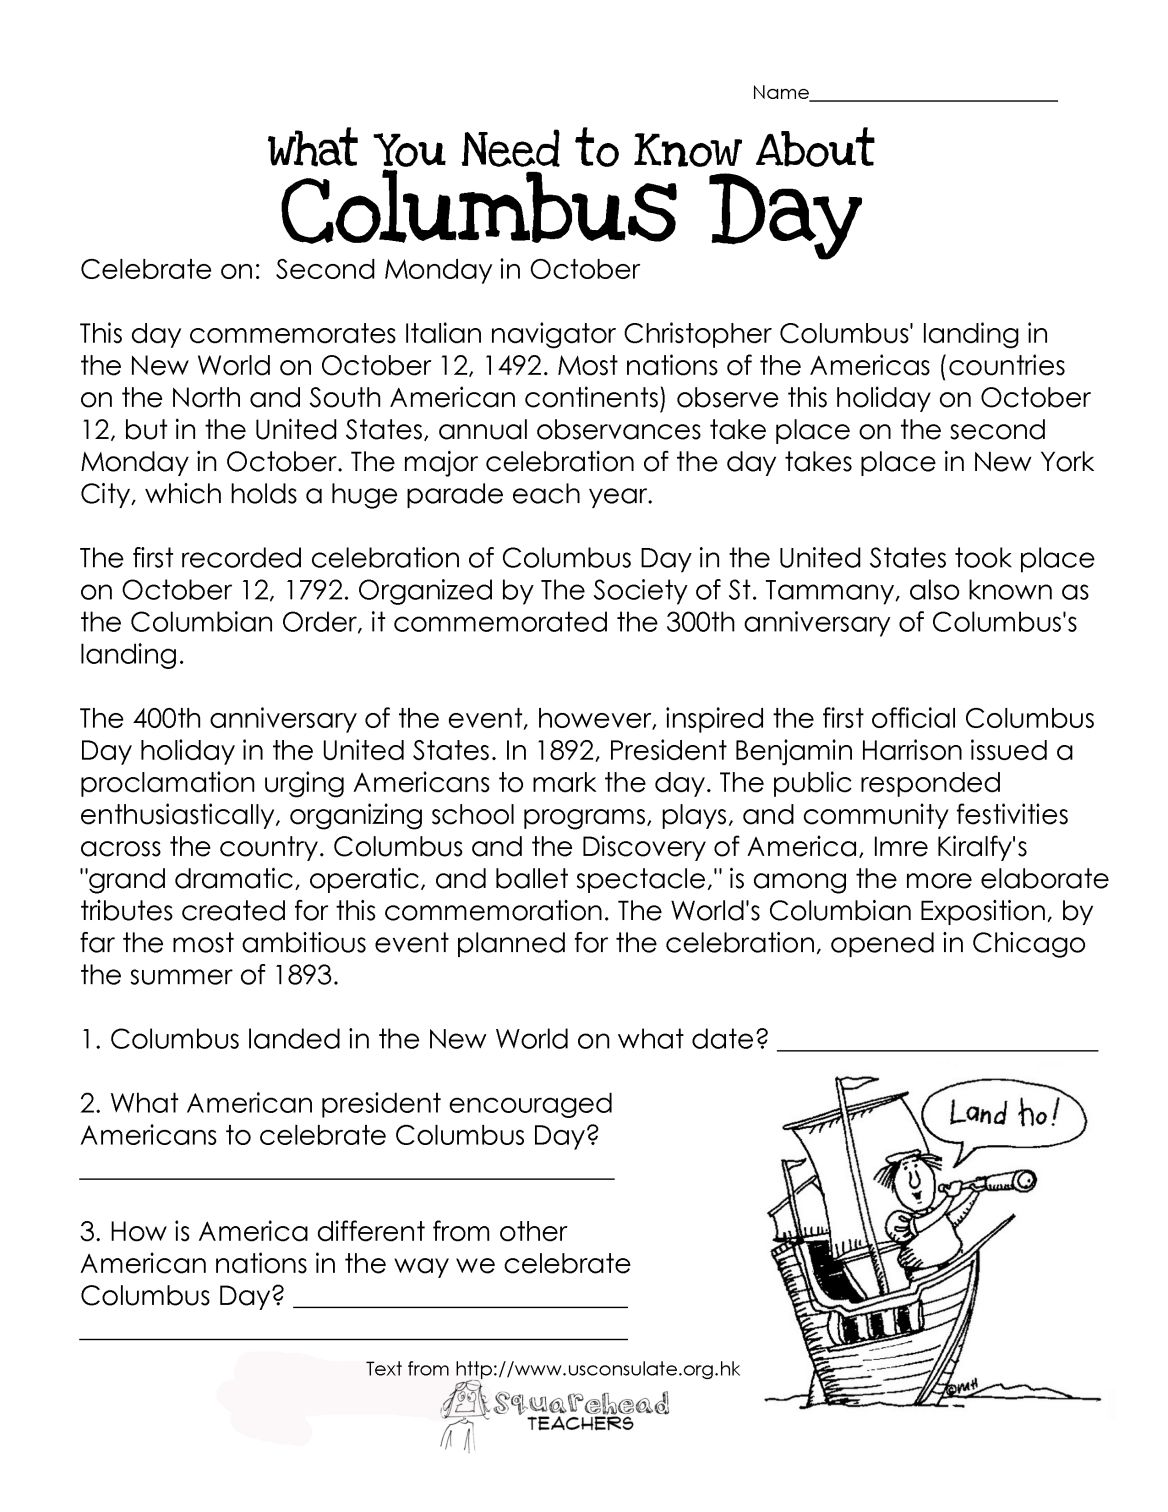 Columbus Day Reading Comprehension Worksheets 1st Grade Worksheets Comprehension Worksheets